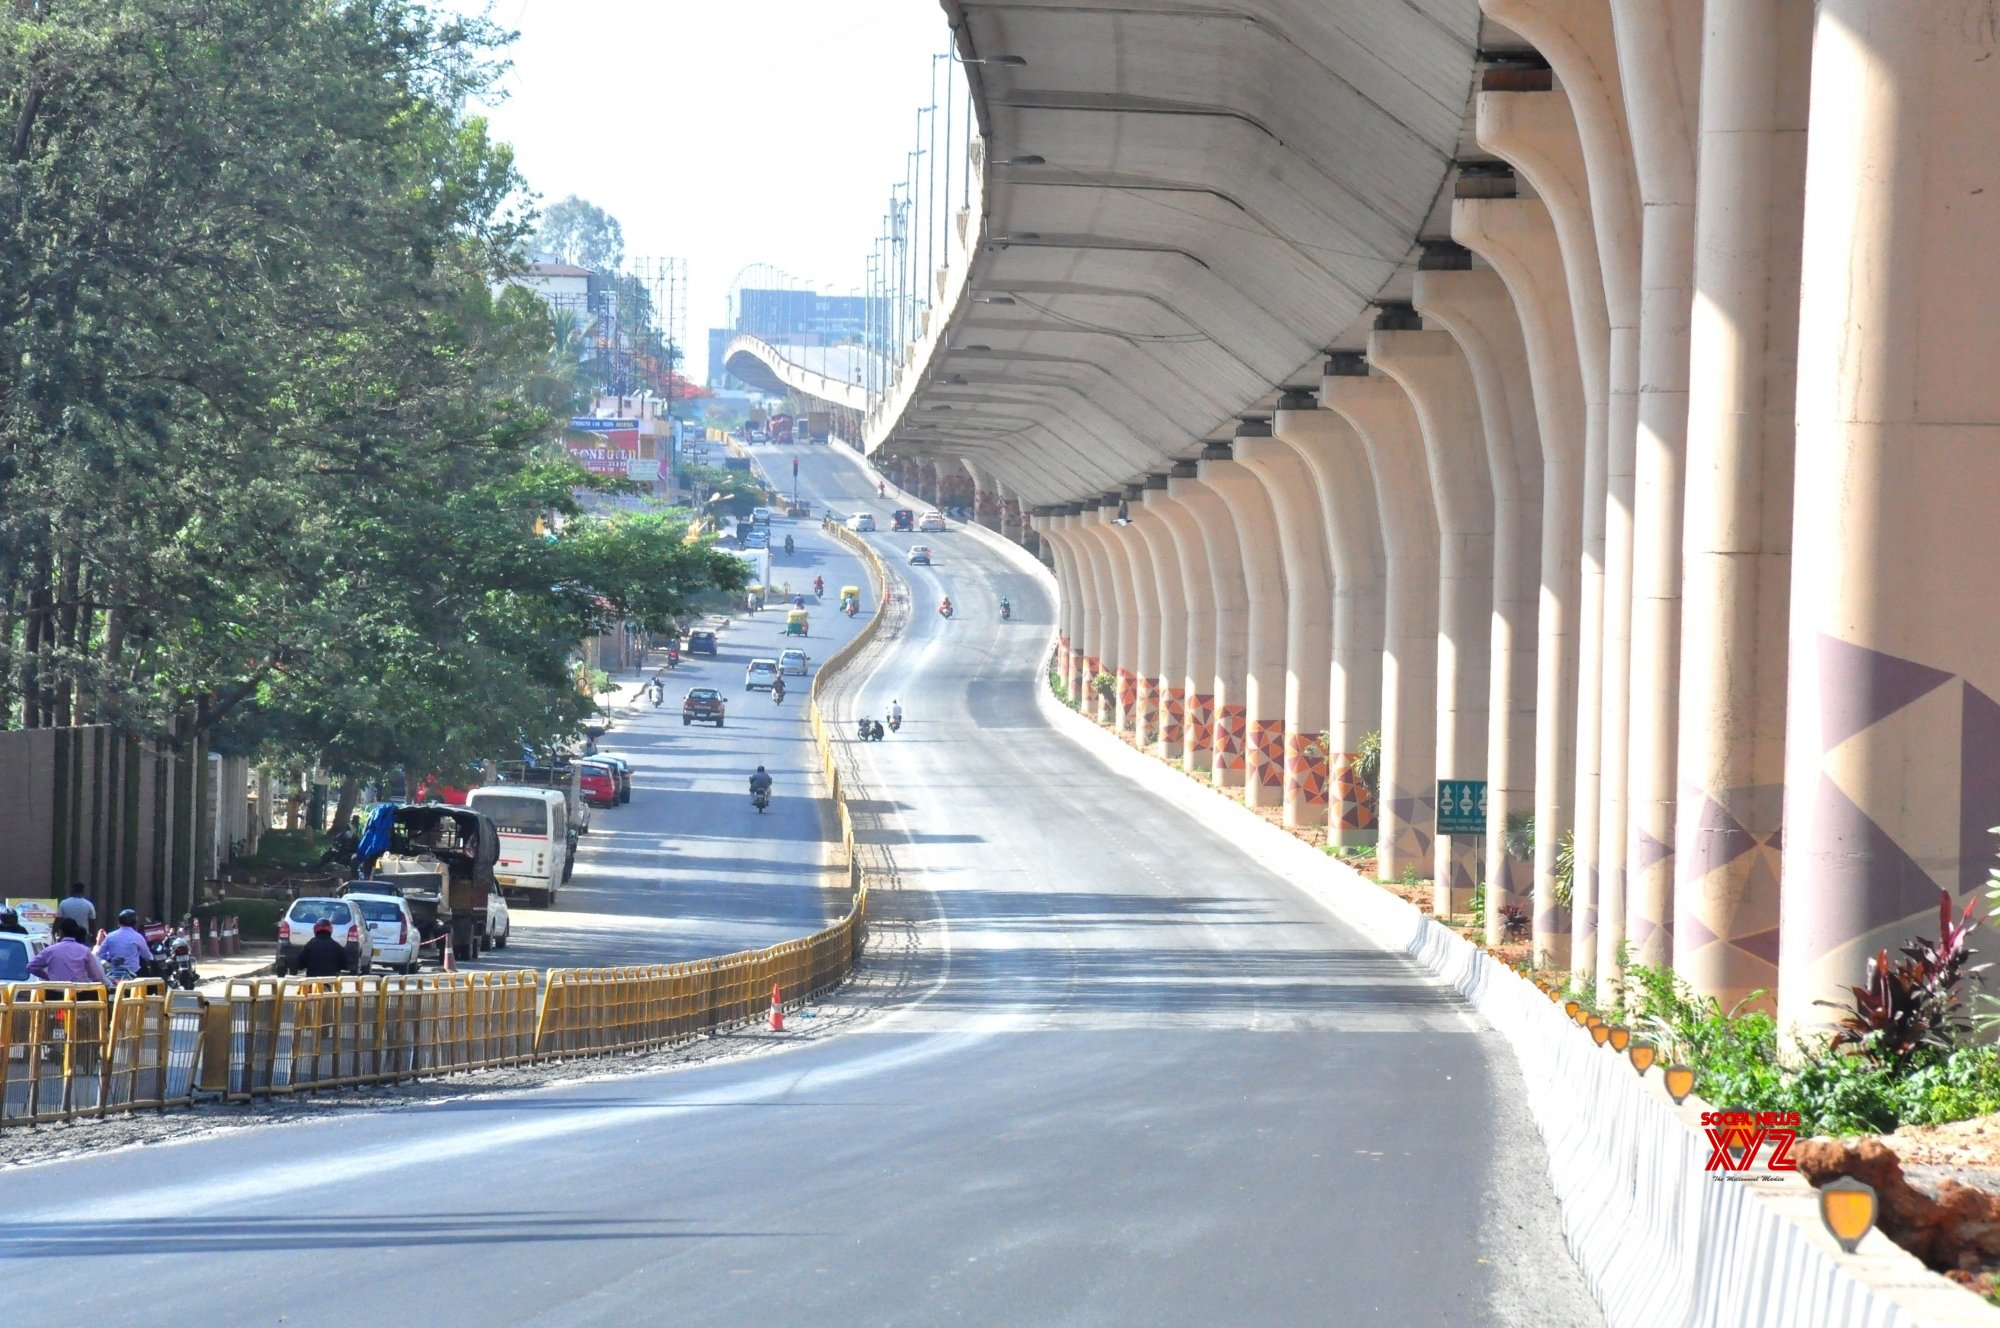 Bengaluru : Deserted look of Bellary road underpass during lockdown in the wake of the 2nd wave of COVID - 19, in Bengaluru. #Gallery